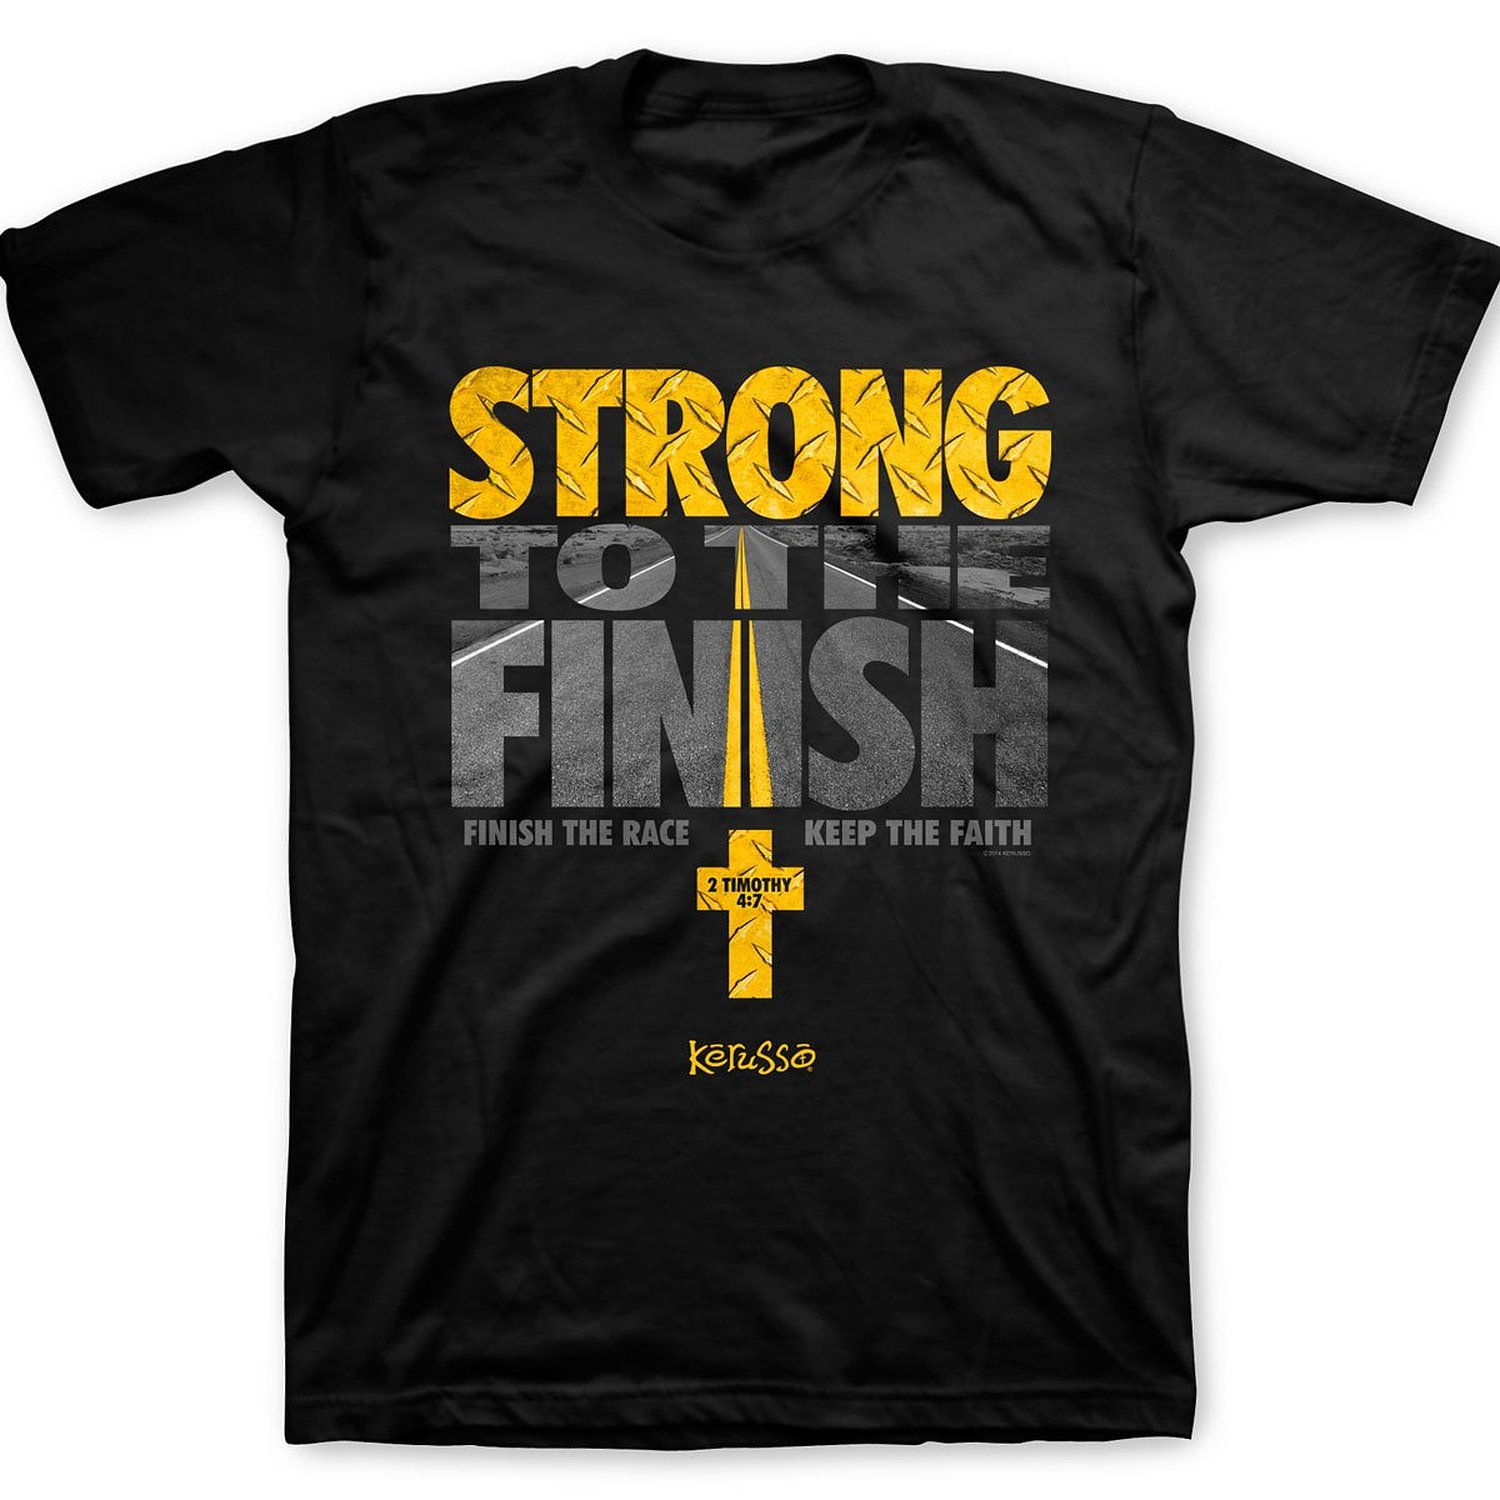 Strong To The Finish T-Shirt Summer Casual Man T Shirt Good Quality Top Tee Short Sleeve Mens Formal Shirts Plus Size